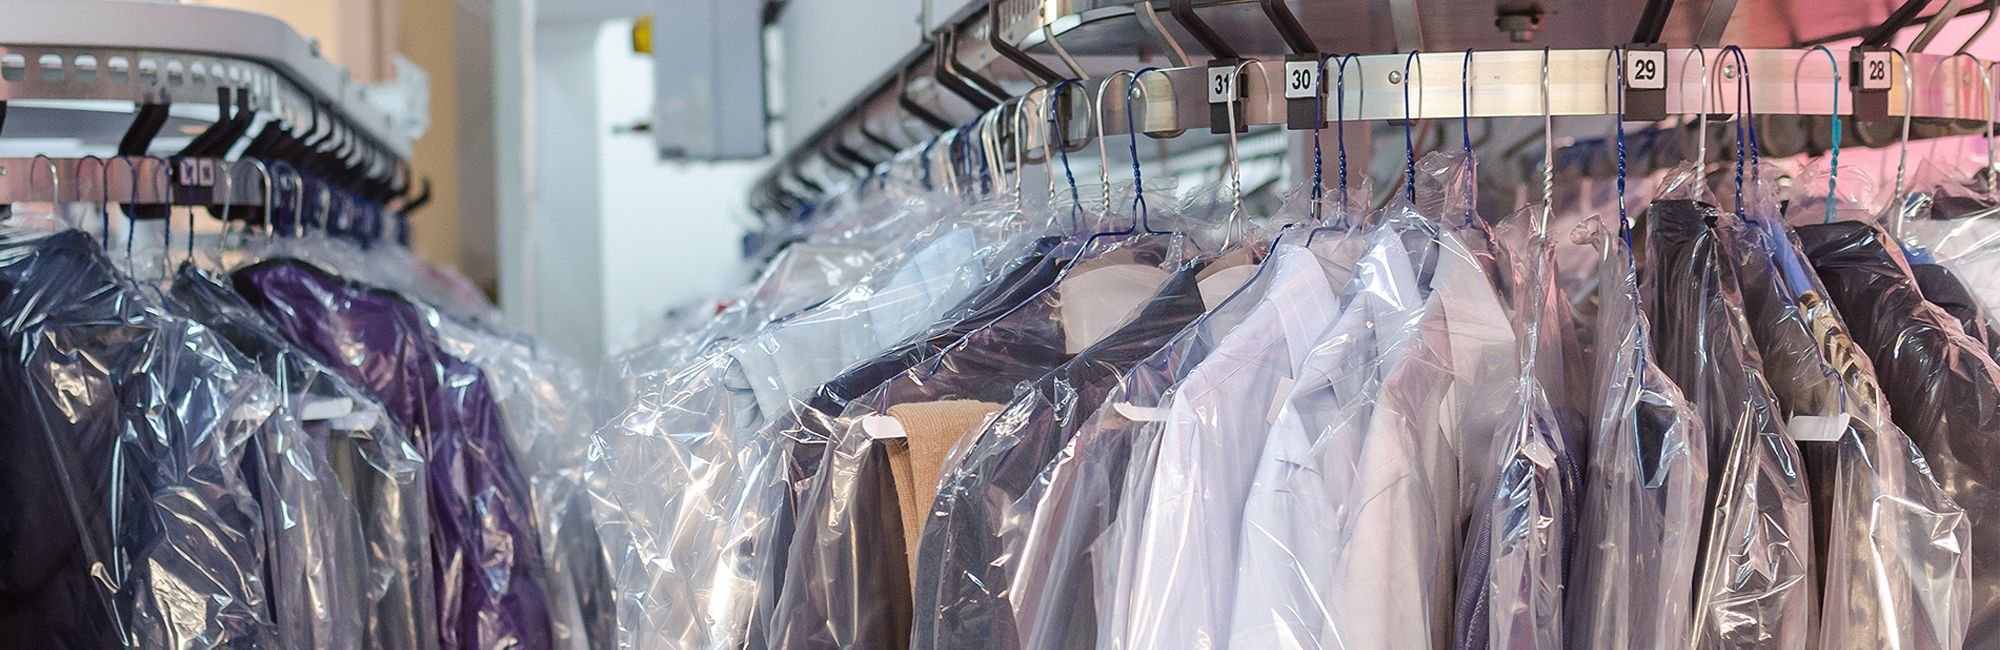 Dry Cleaning & Laundry Services - Competitive Prices!